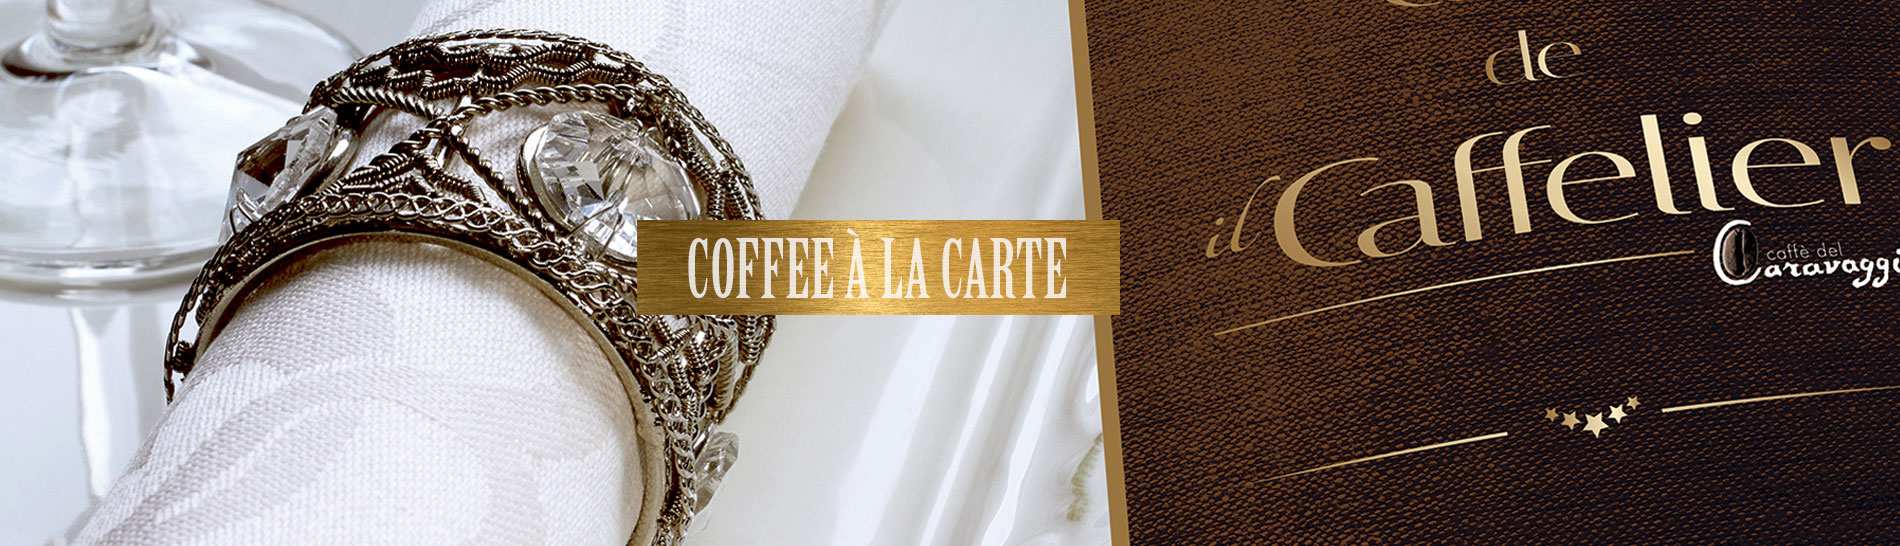 Coffee à la Carte